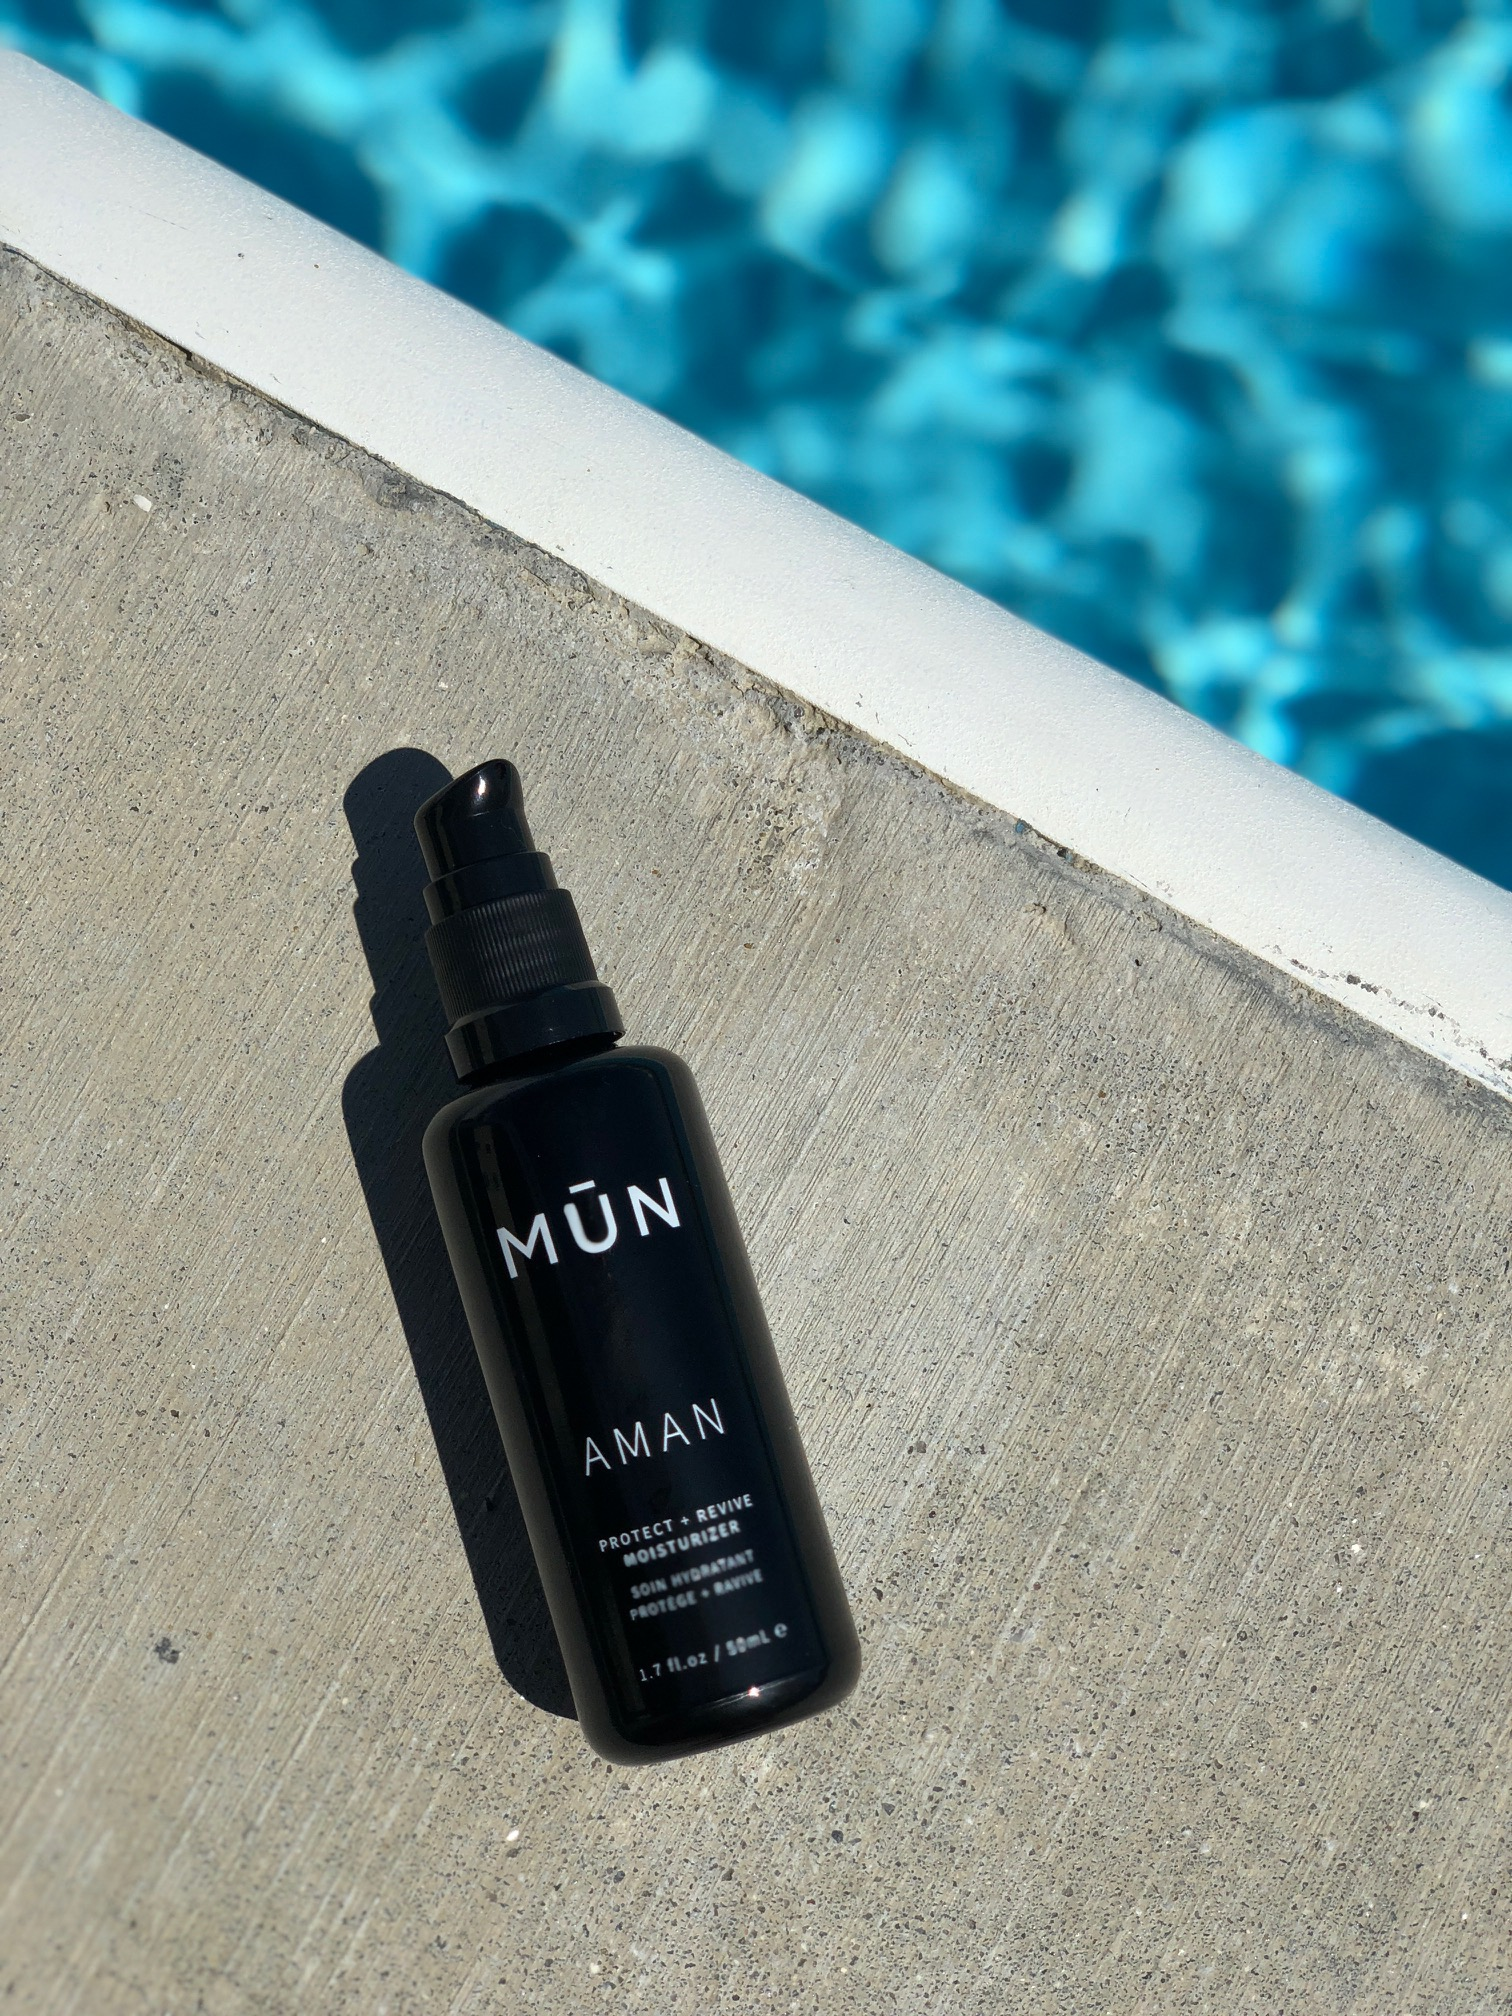 New Product Launch: MŪN AMAN Protect + Revive Moisturizer